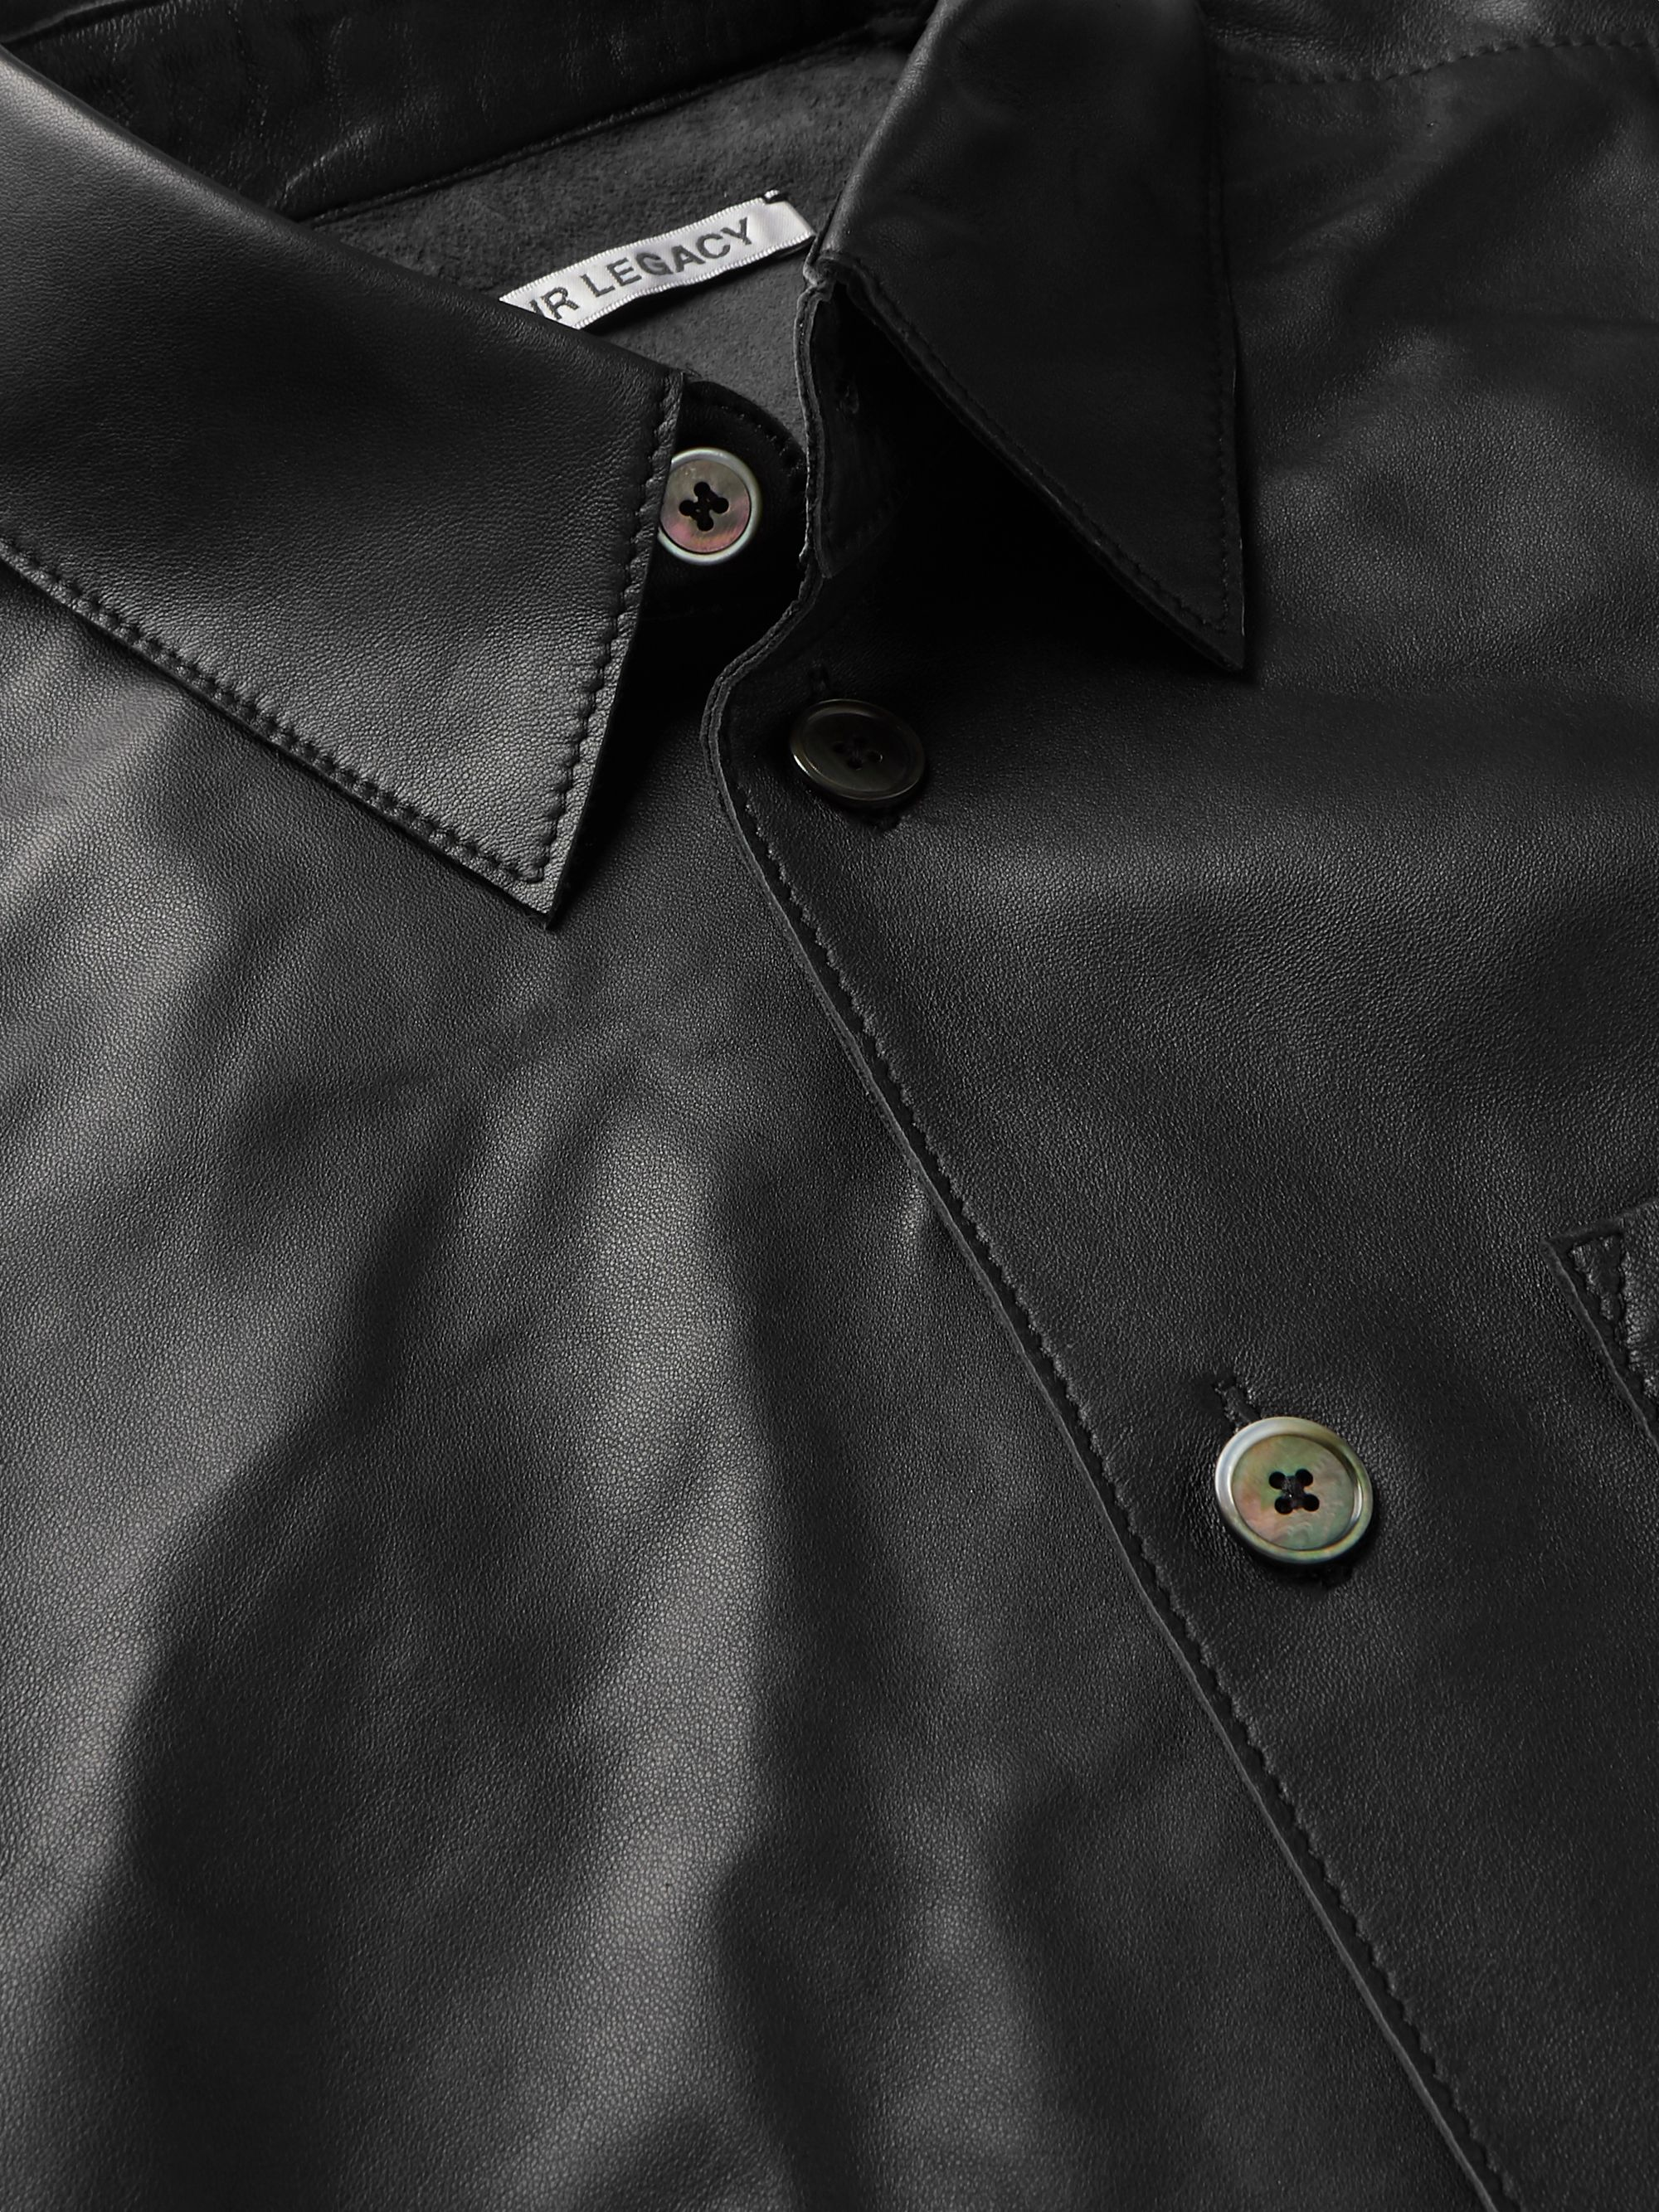 Our Legacy Leather Shirt